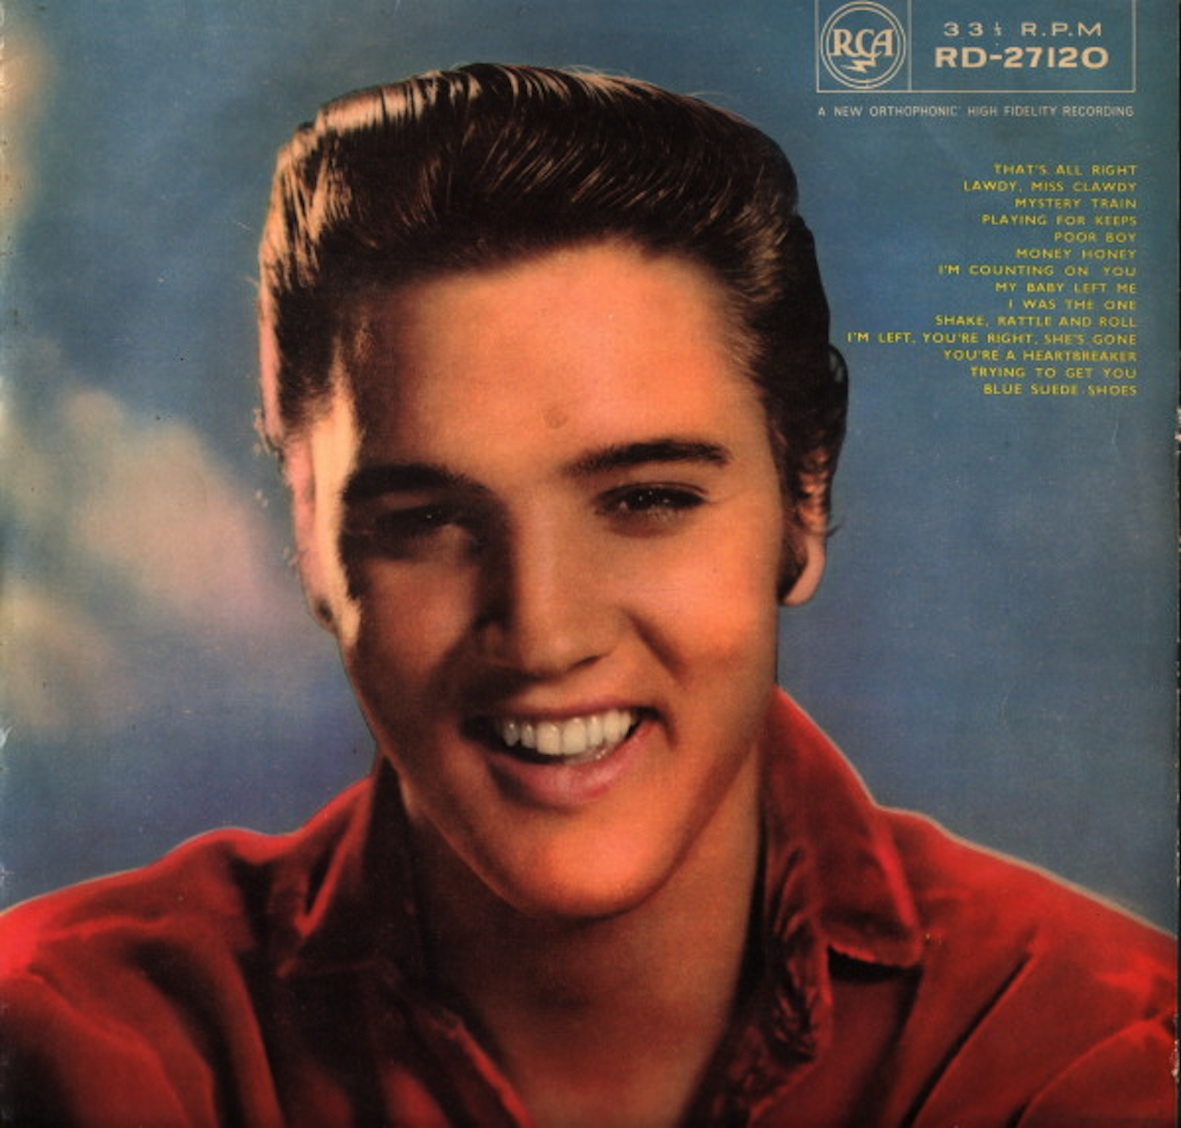 20 Questions, Test Pressing, Dr Rob, Timothy J. Fairplay, Bird Scarer, Emotional Response, Magic Feet, Andrew Weatherall, Crimes Of The Future, Asphodells, Elvis Presley